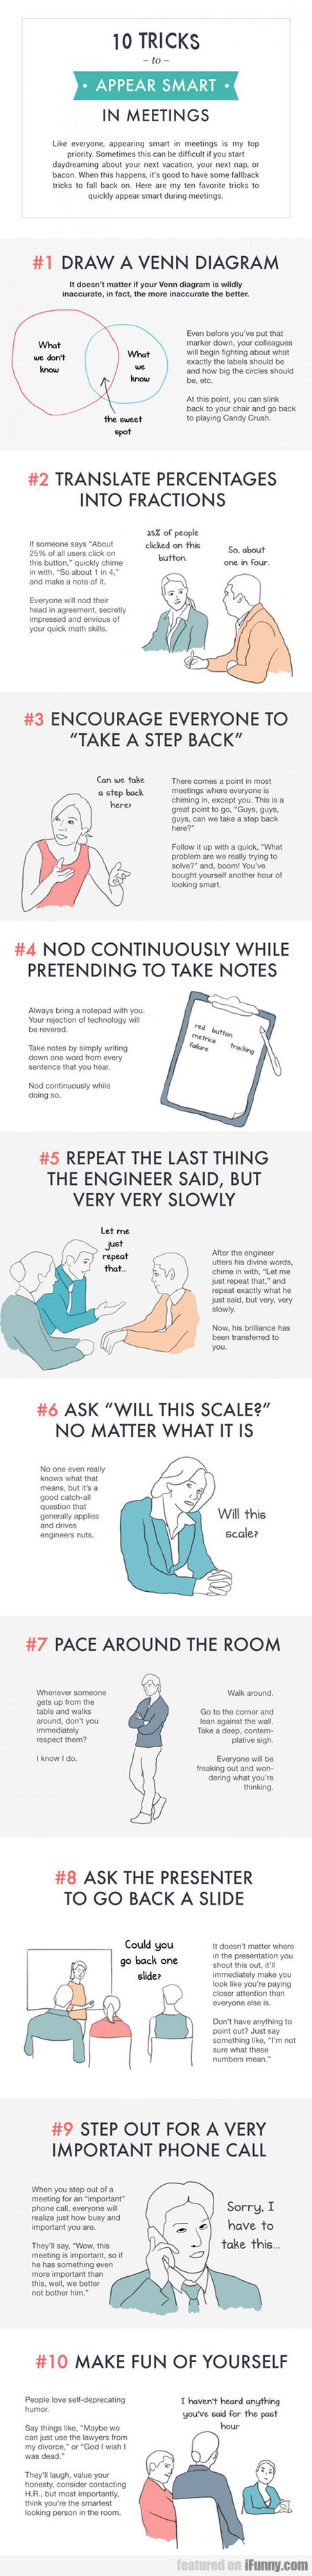 10 Tricks To Appear Smart In Meetings